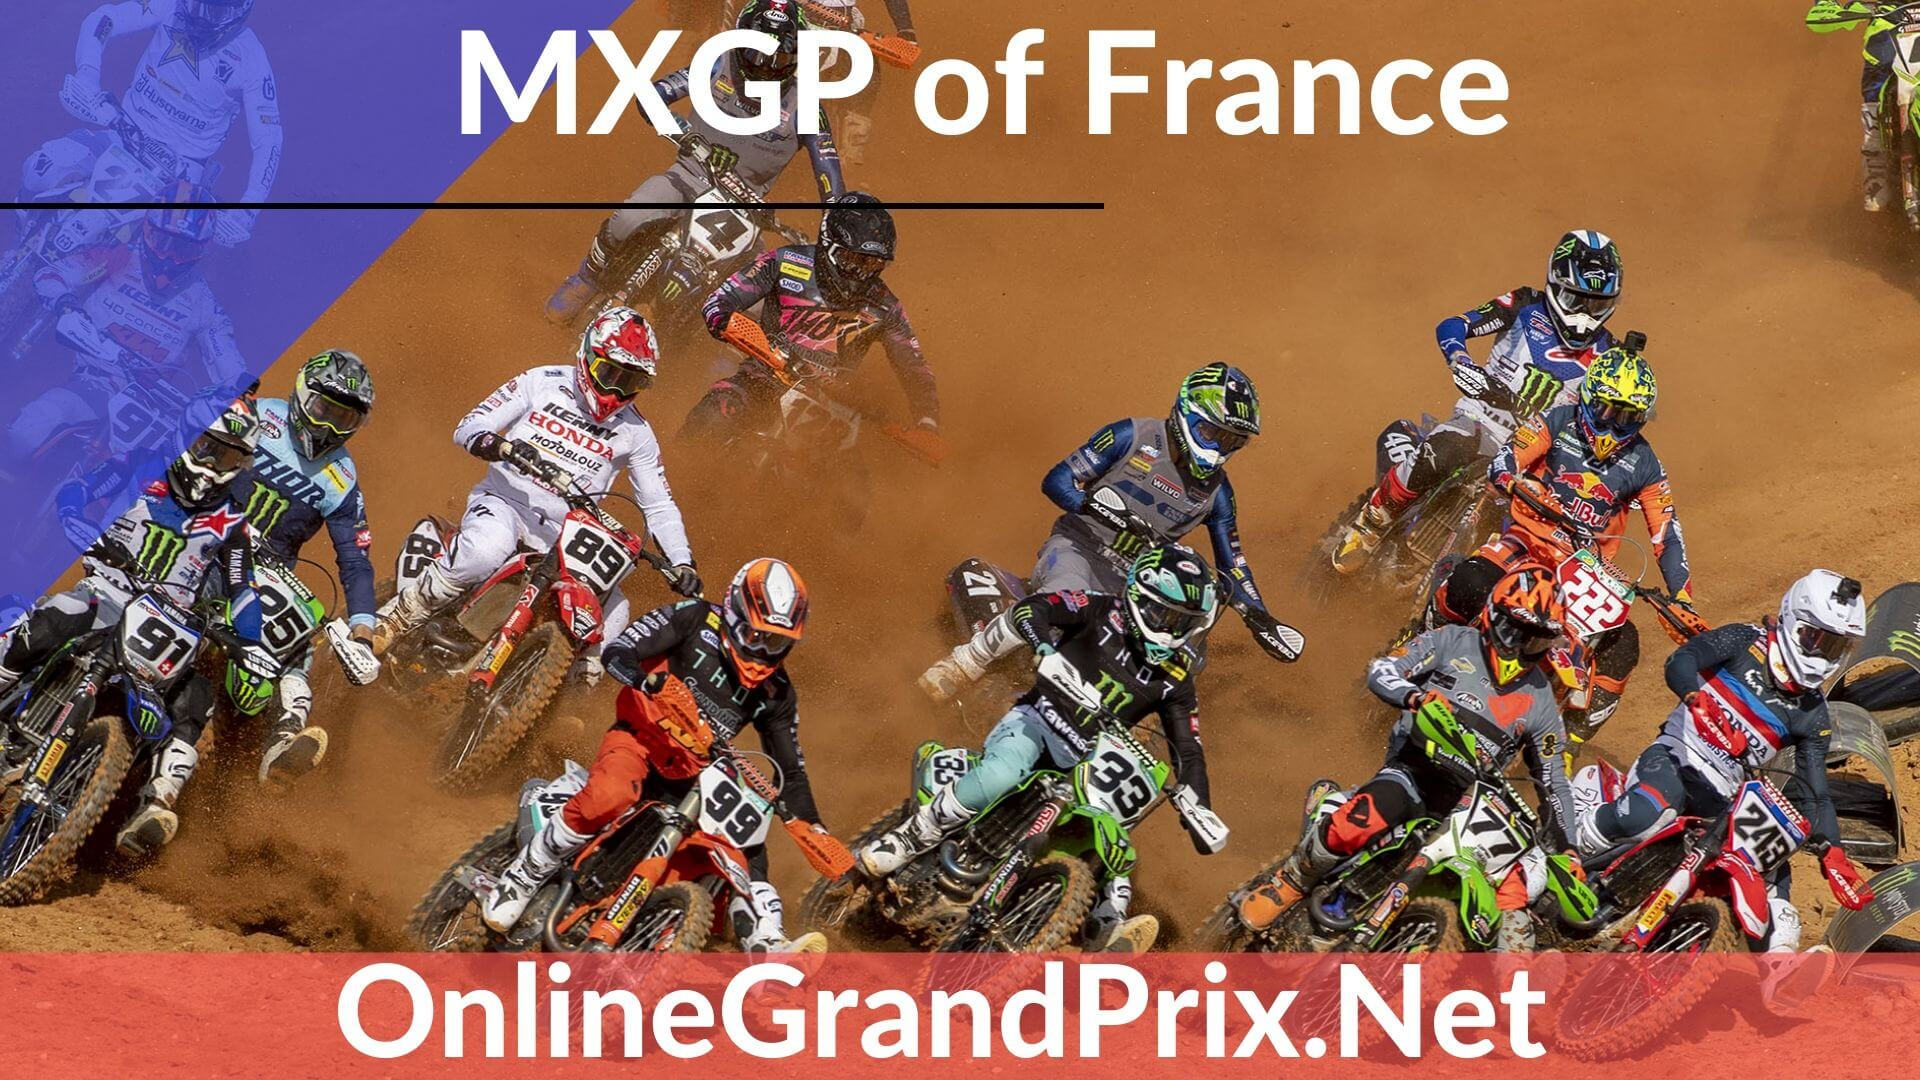 France MXGP Live Stream 2020 | FIM MotoCross WC